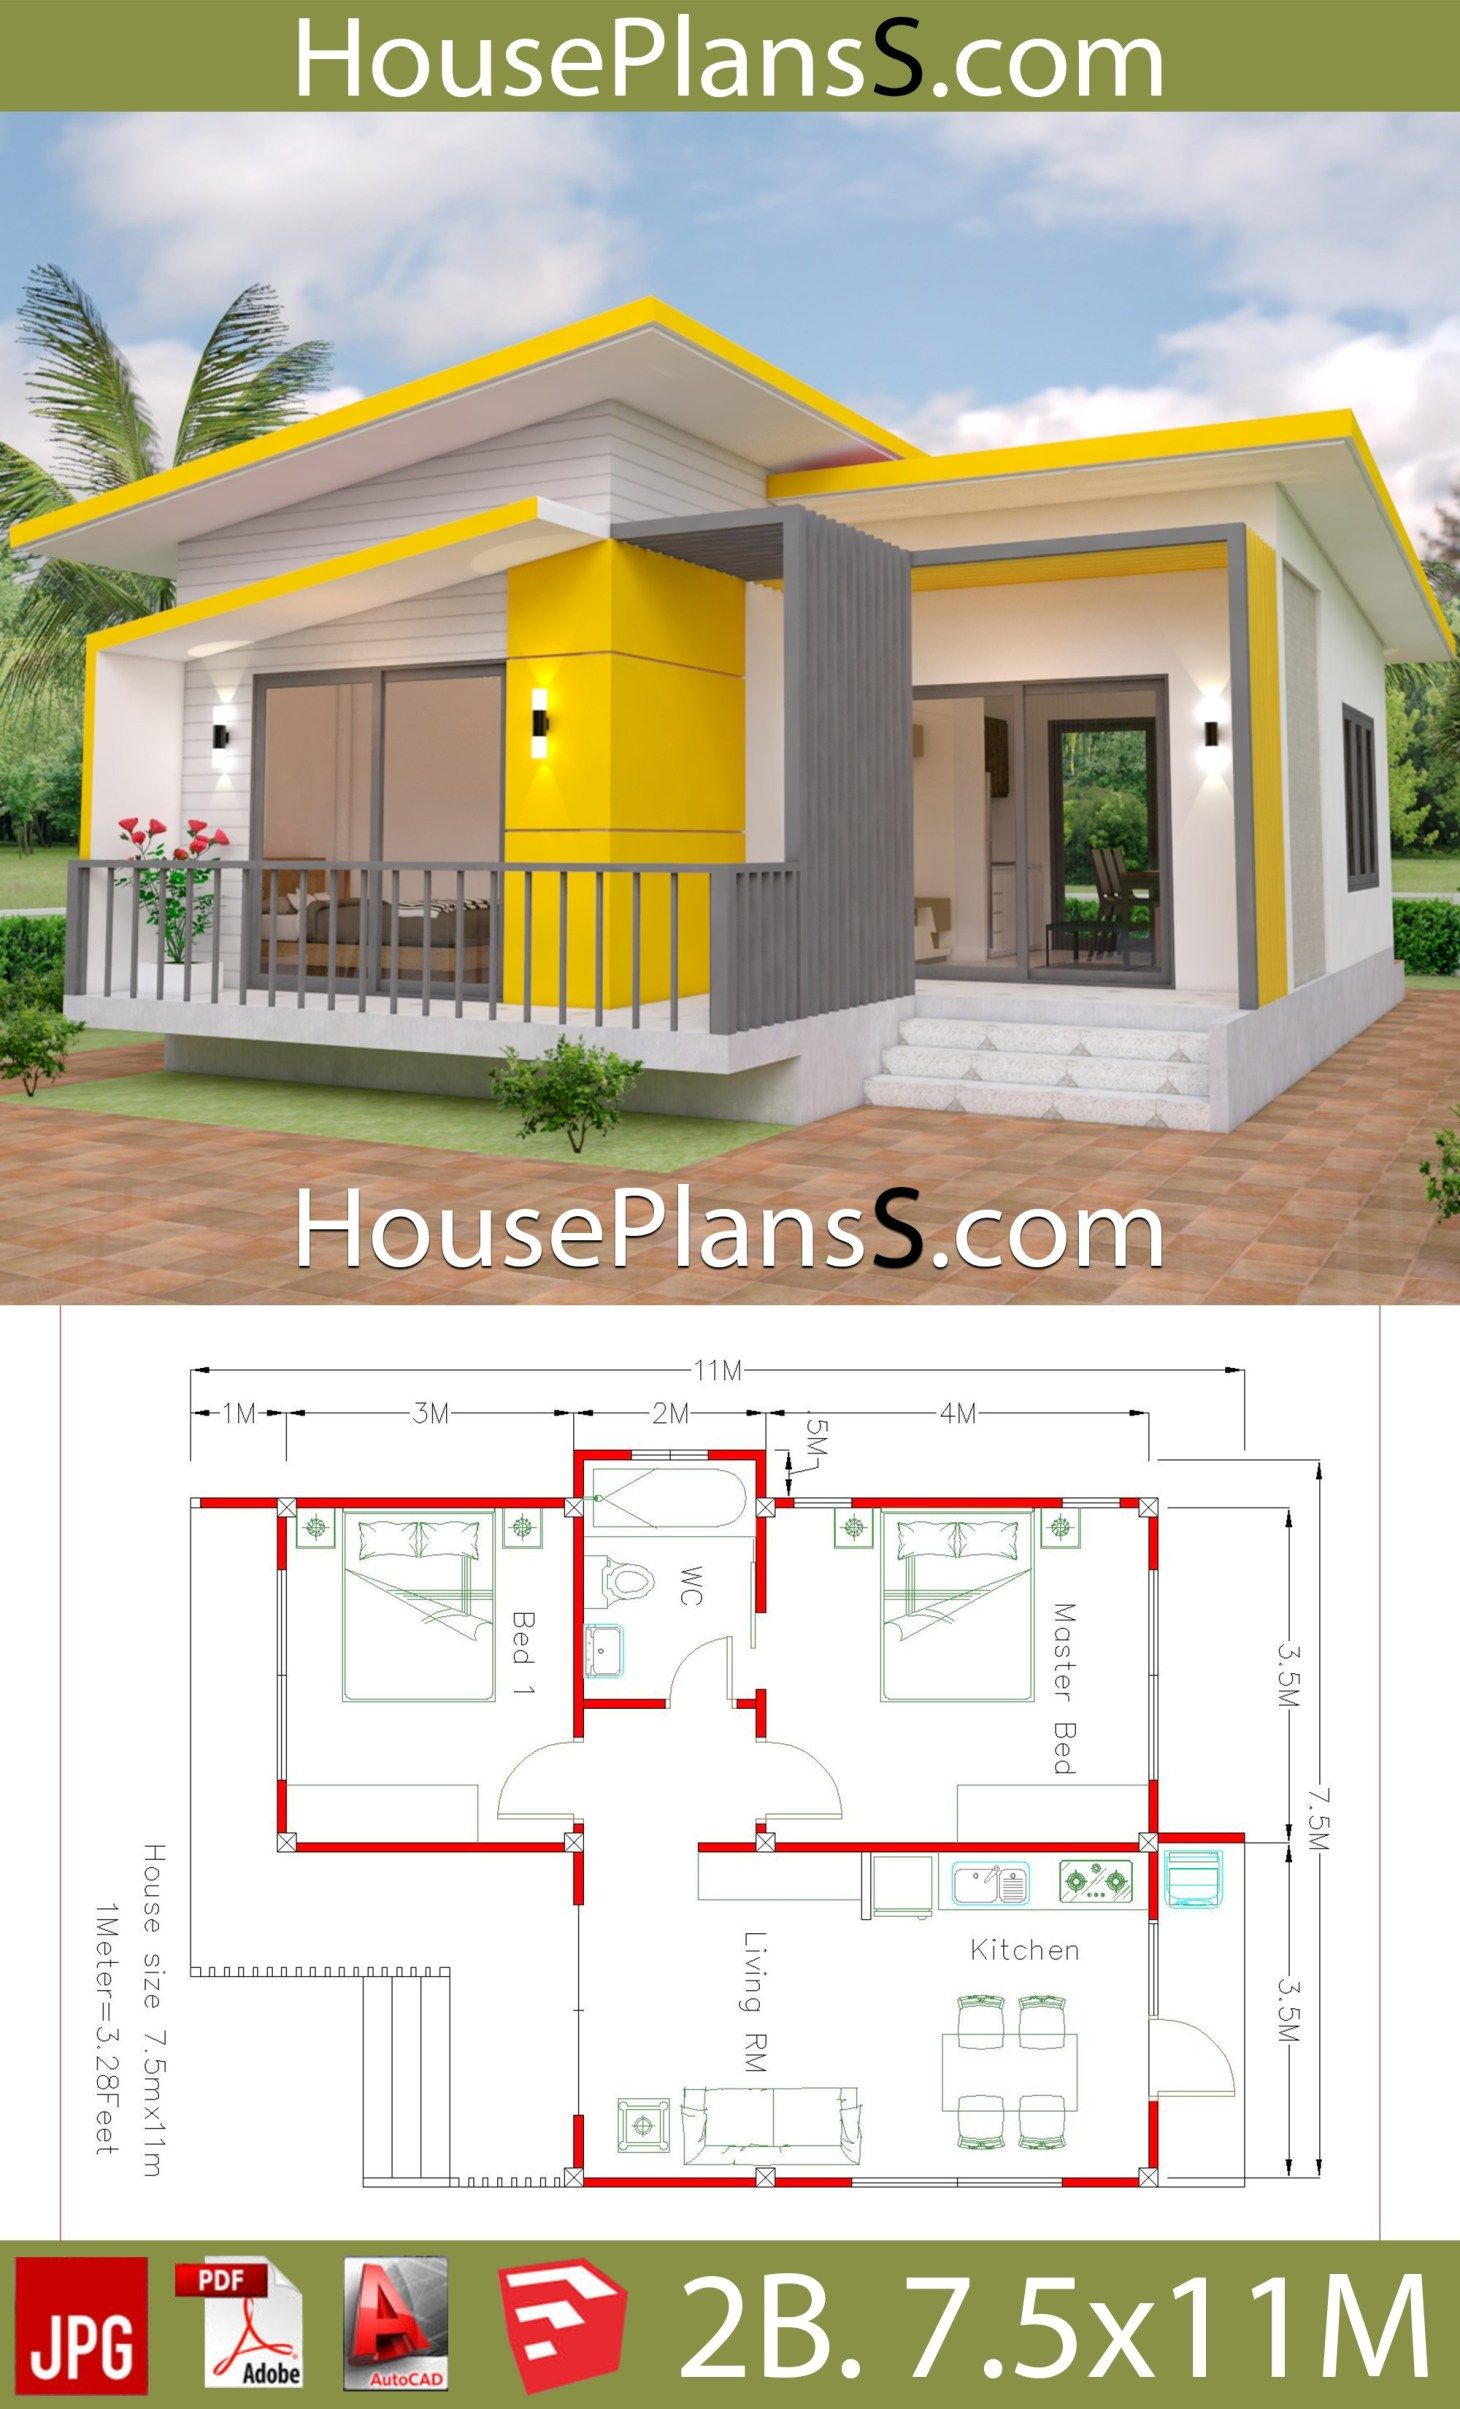 House Plans 7 5x11 With 2 Bedrooms Full Plans House Plans 3d Sims House Plans Small House Design Plans House Plans